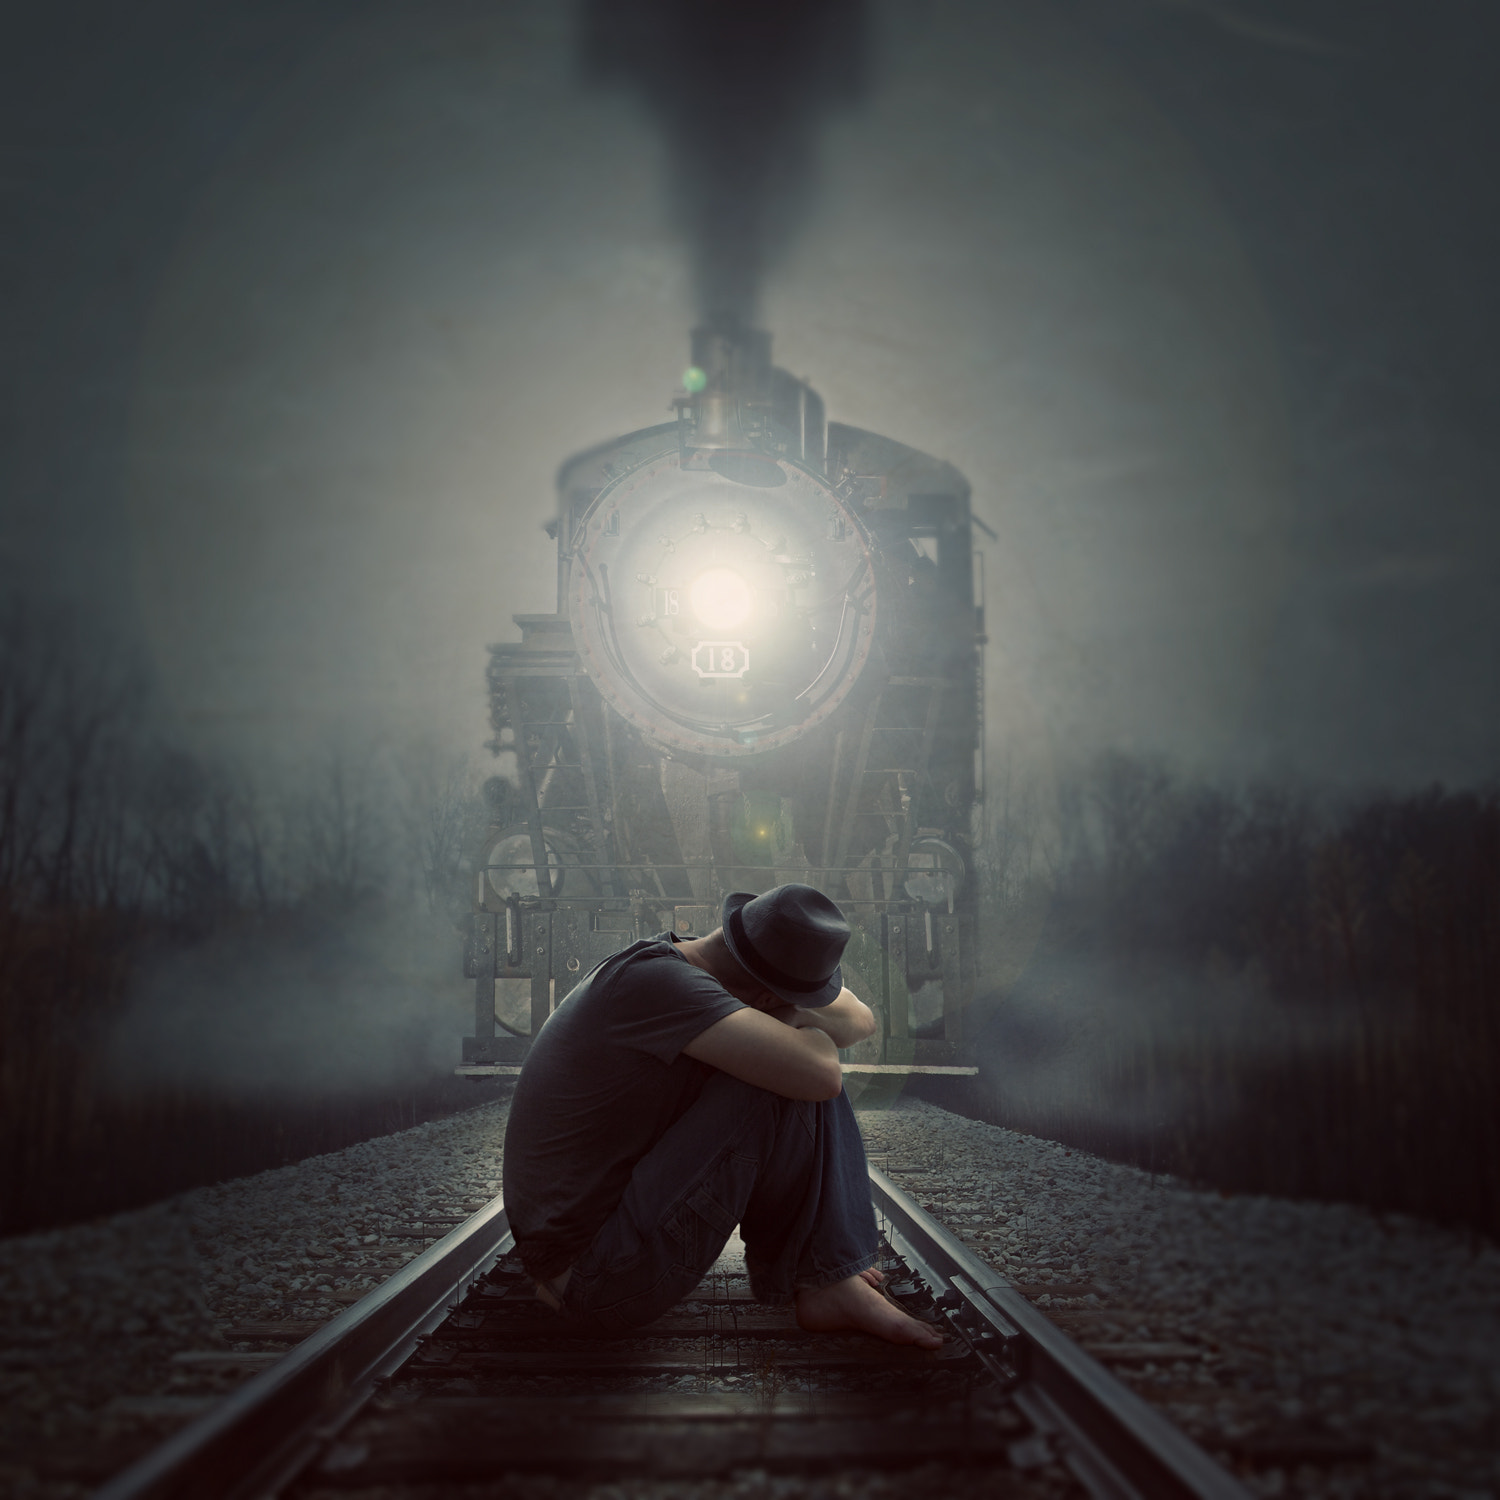 Photograph Train Of Thought by Shawn Van Daele on 500px